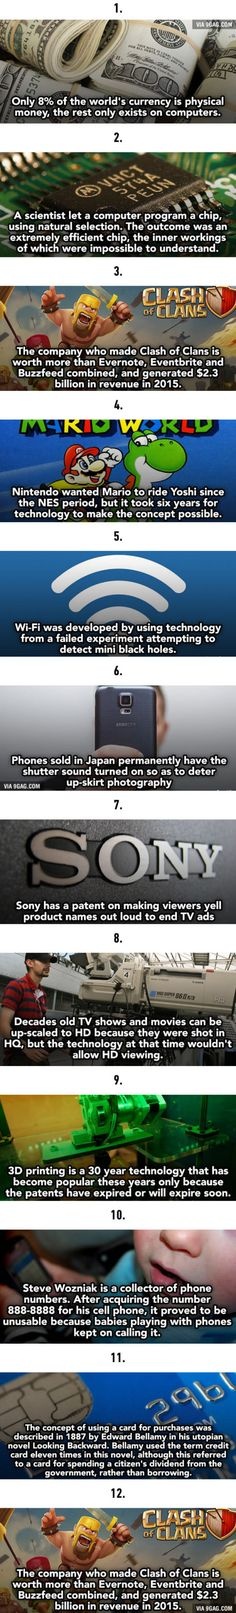 12 Interesting Technology Facts